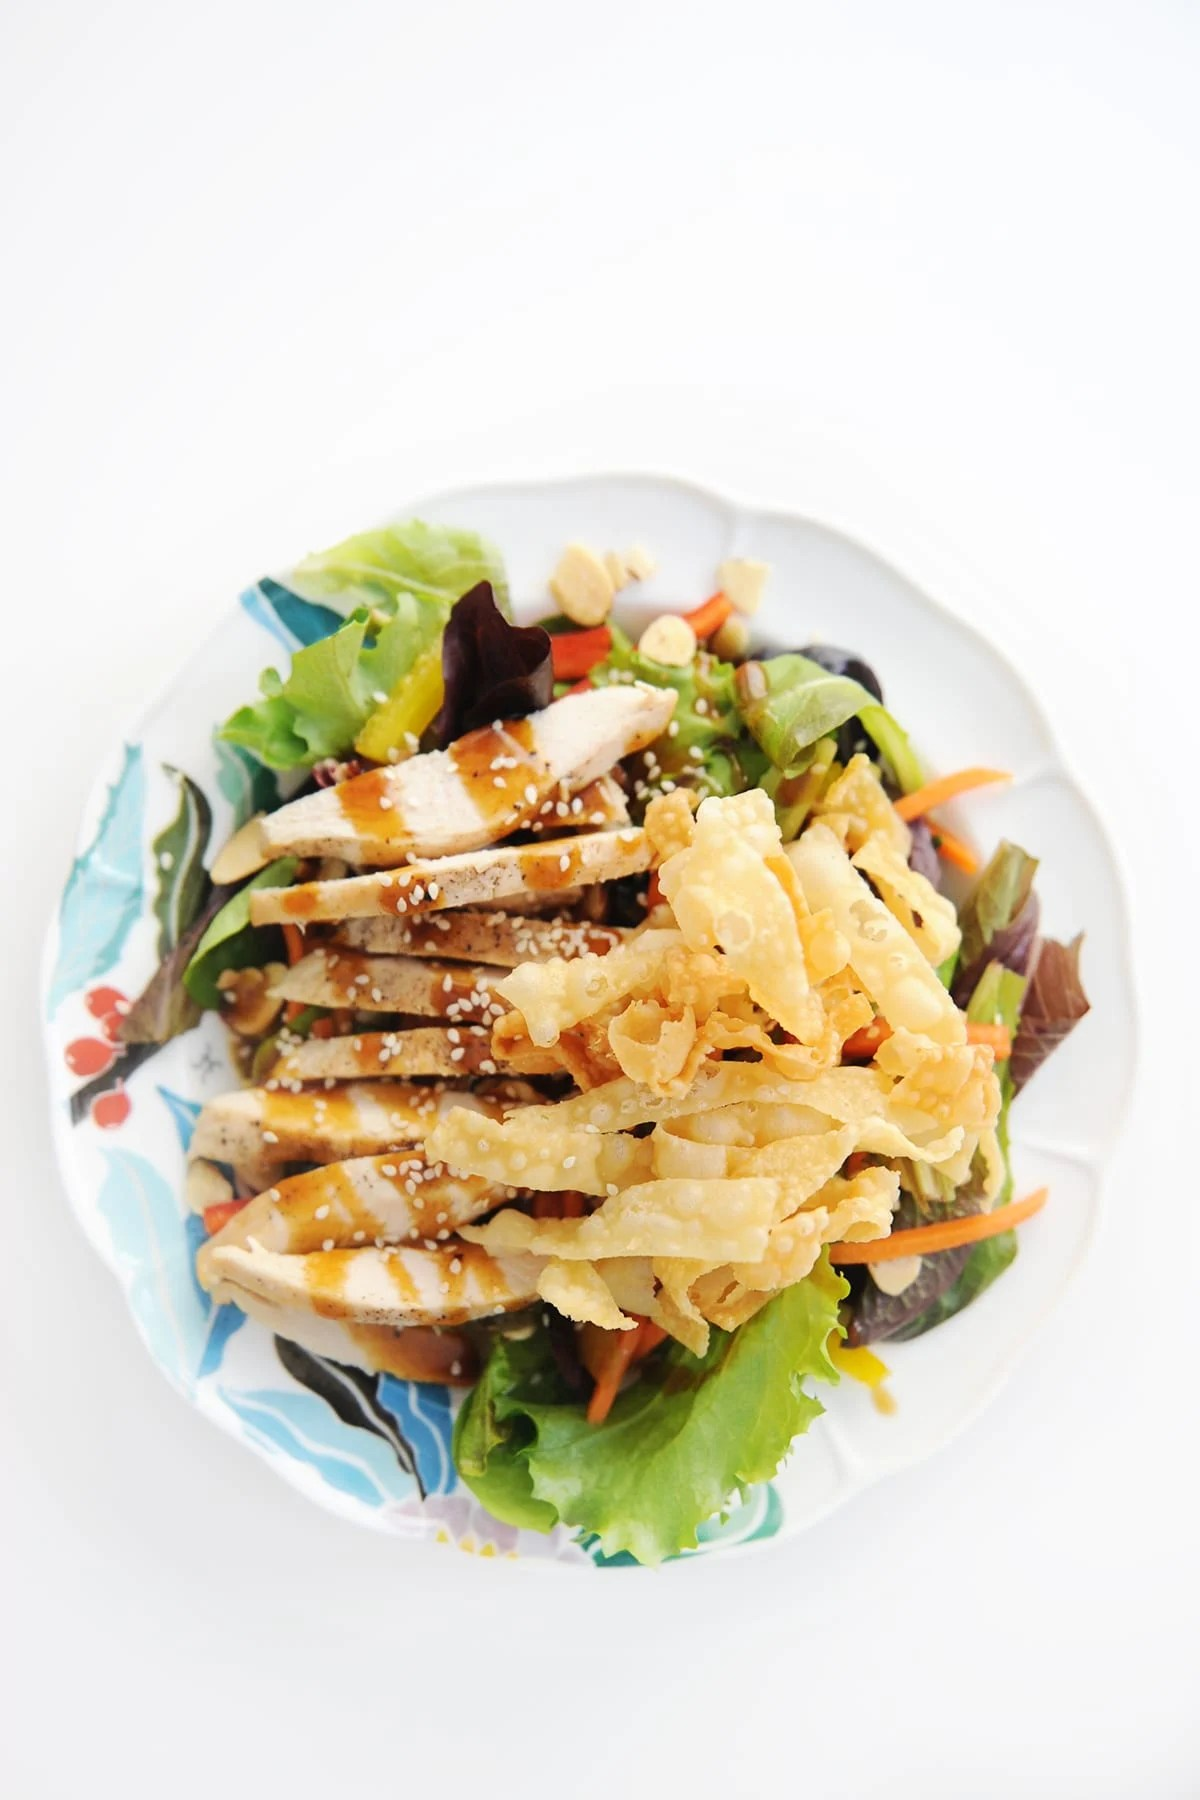 nordstrom cafe recipe for salads